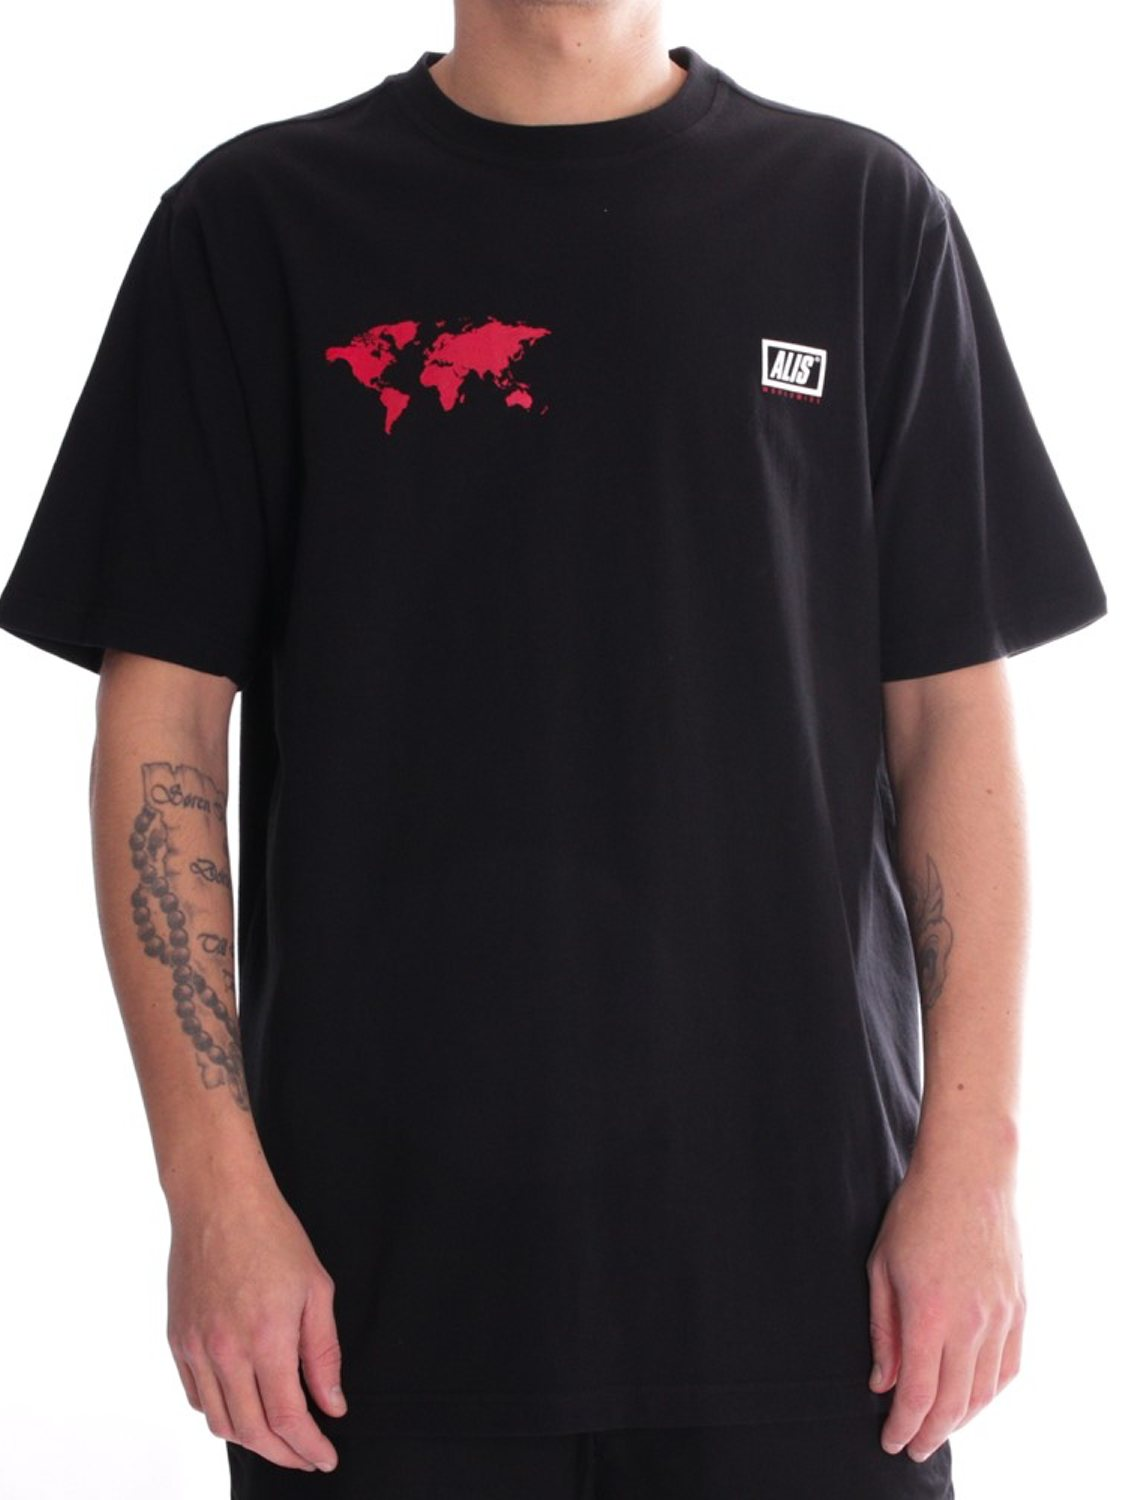 ALIS- T-SHIRT WORLDWIDE BLACK | GATE36 HOBRO